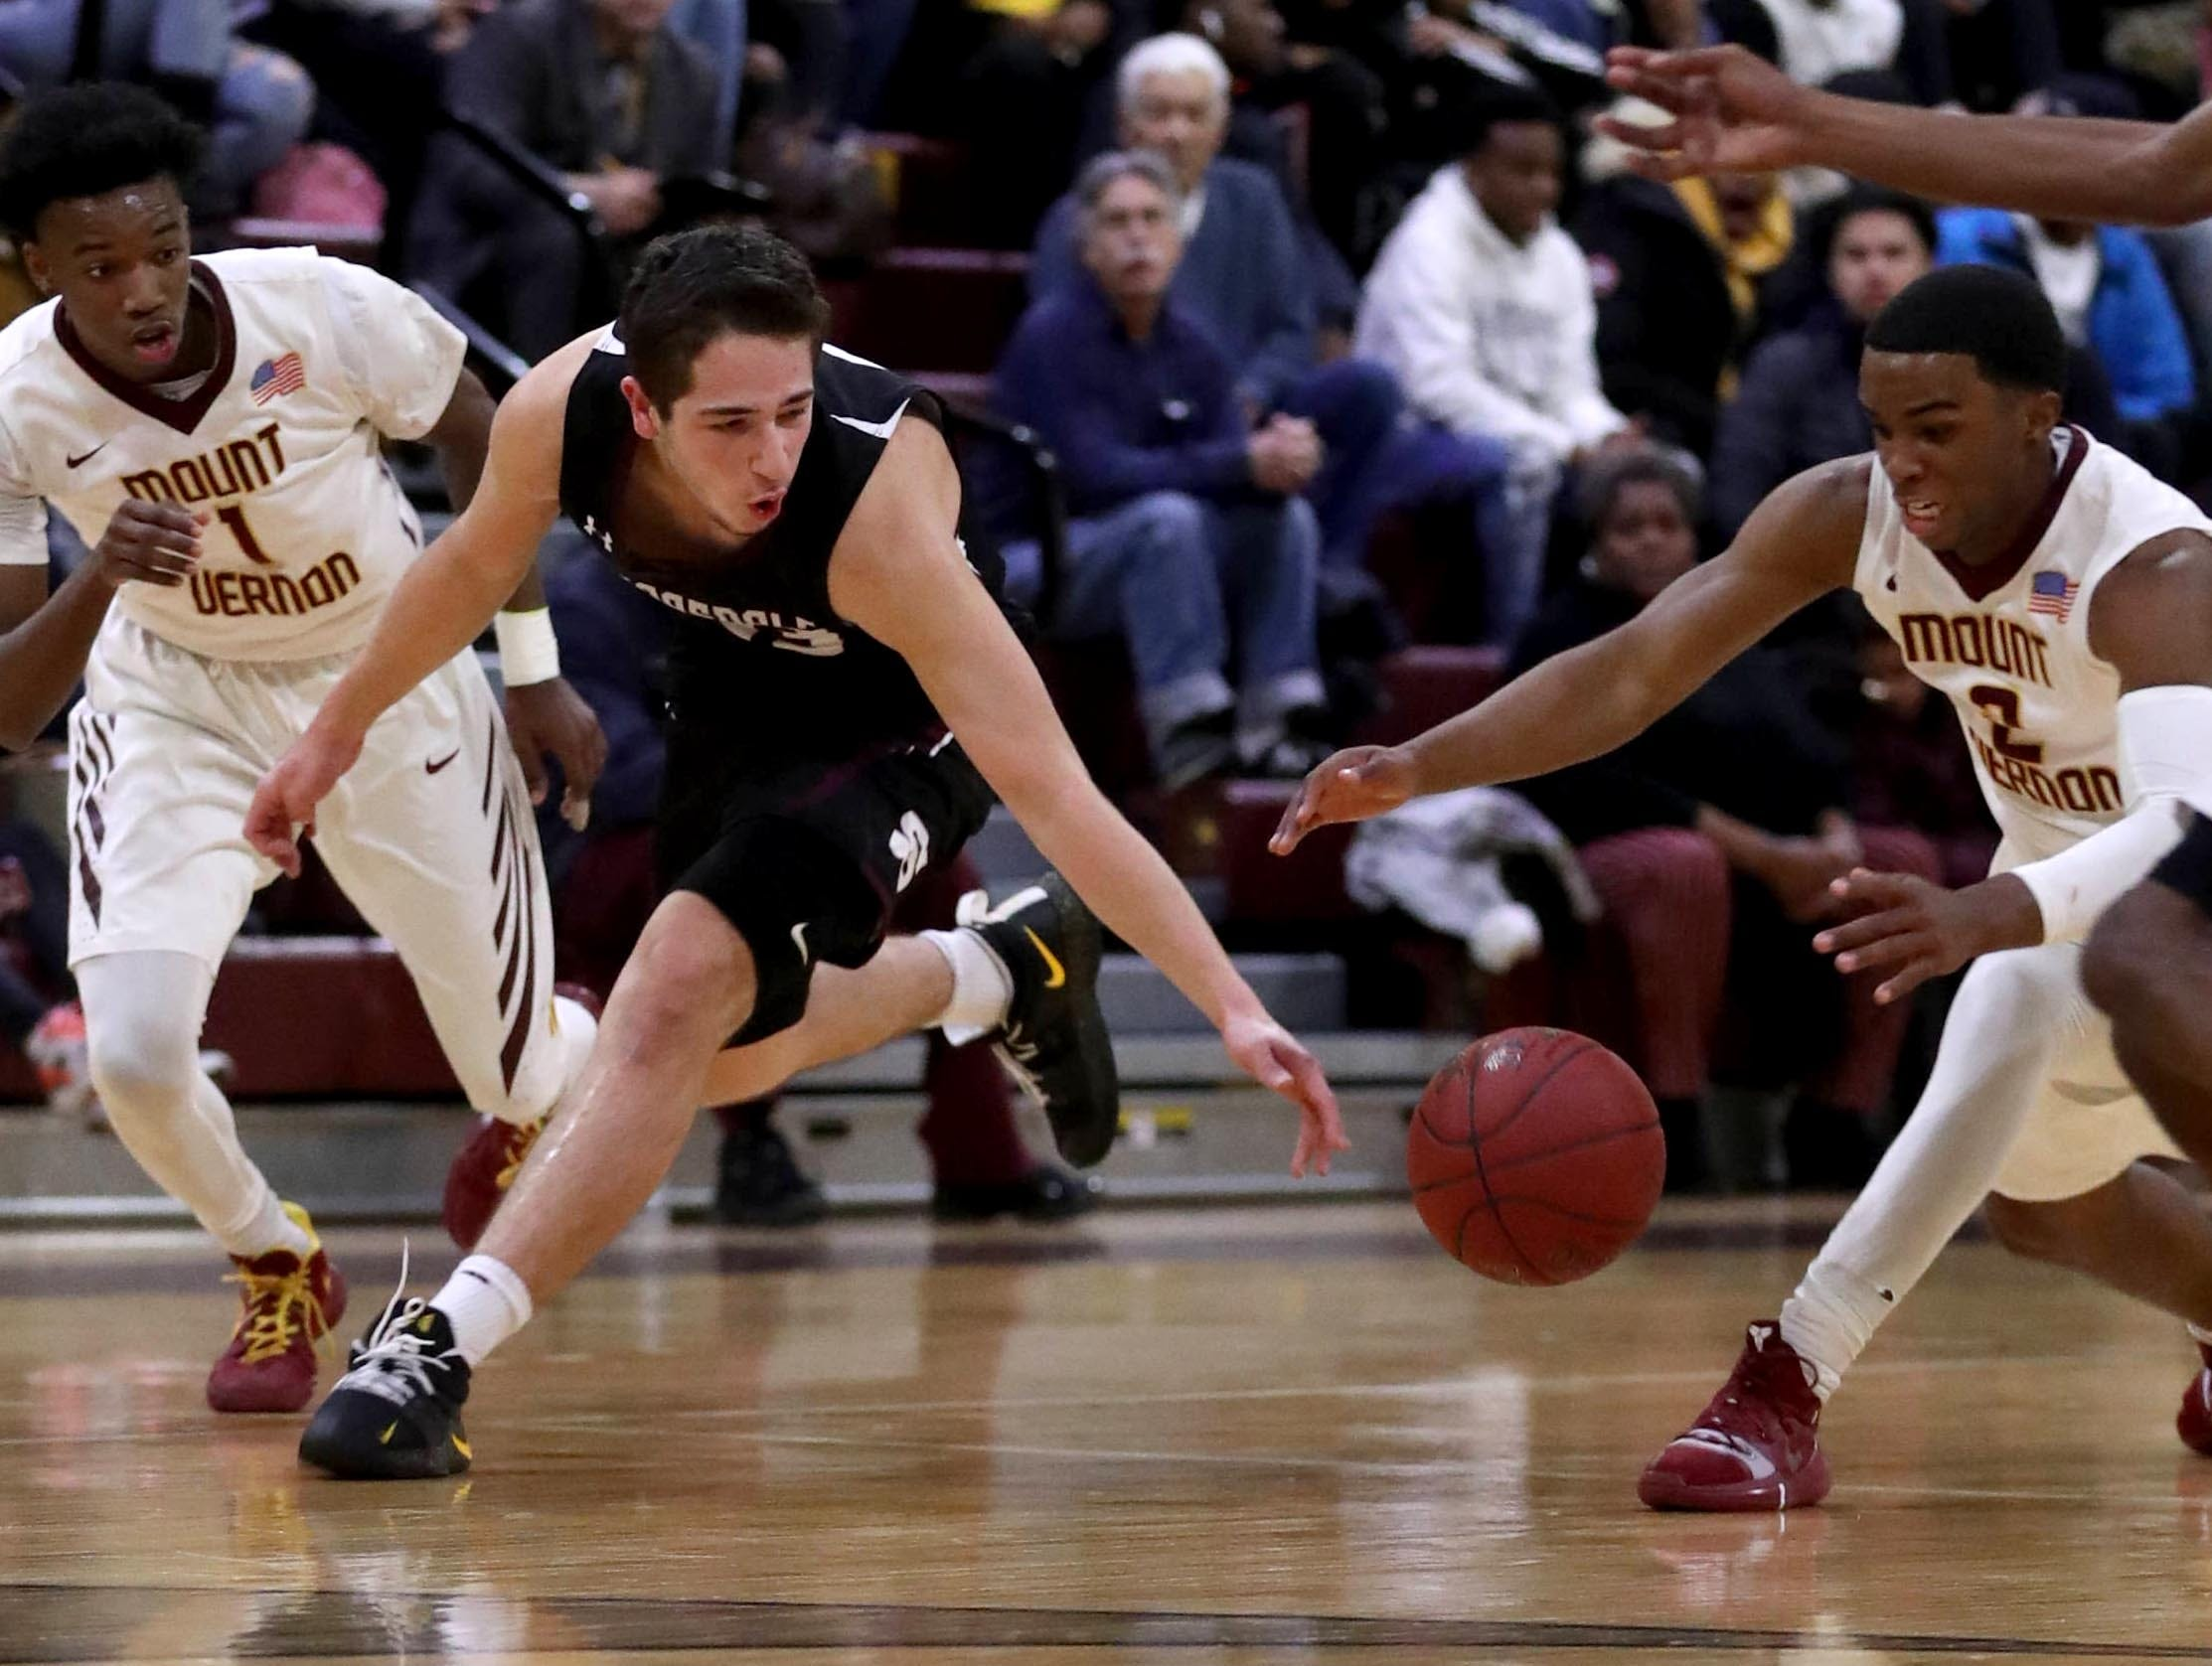 Cole Kattan of Scarsdale and Joel Cooper of Mount Vernon chase a loose ball during a varsity basketball game at Mount Vernon High School Jan. 9, 2019. Mount Vernon defeated Scarsdale 70-54.